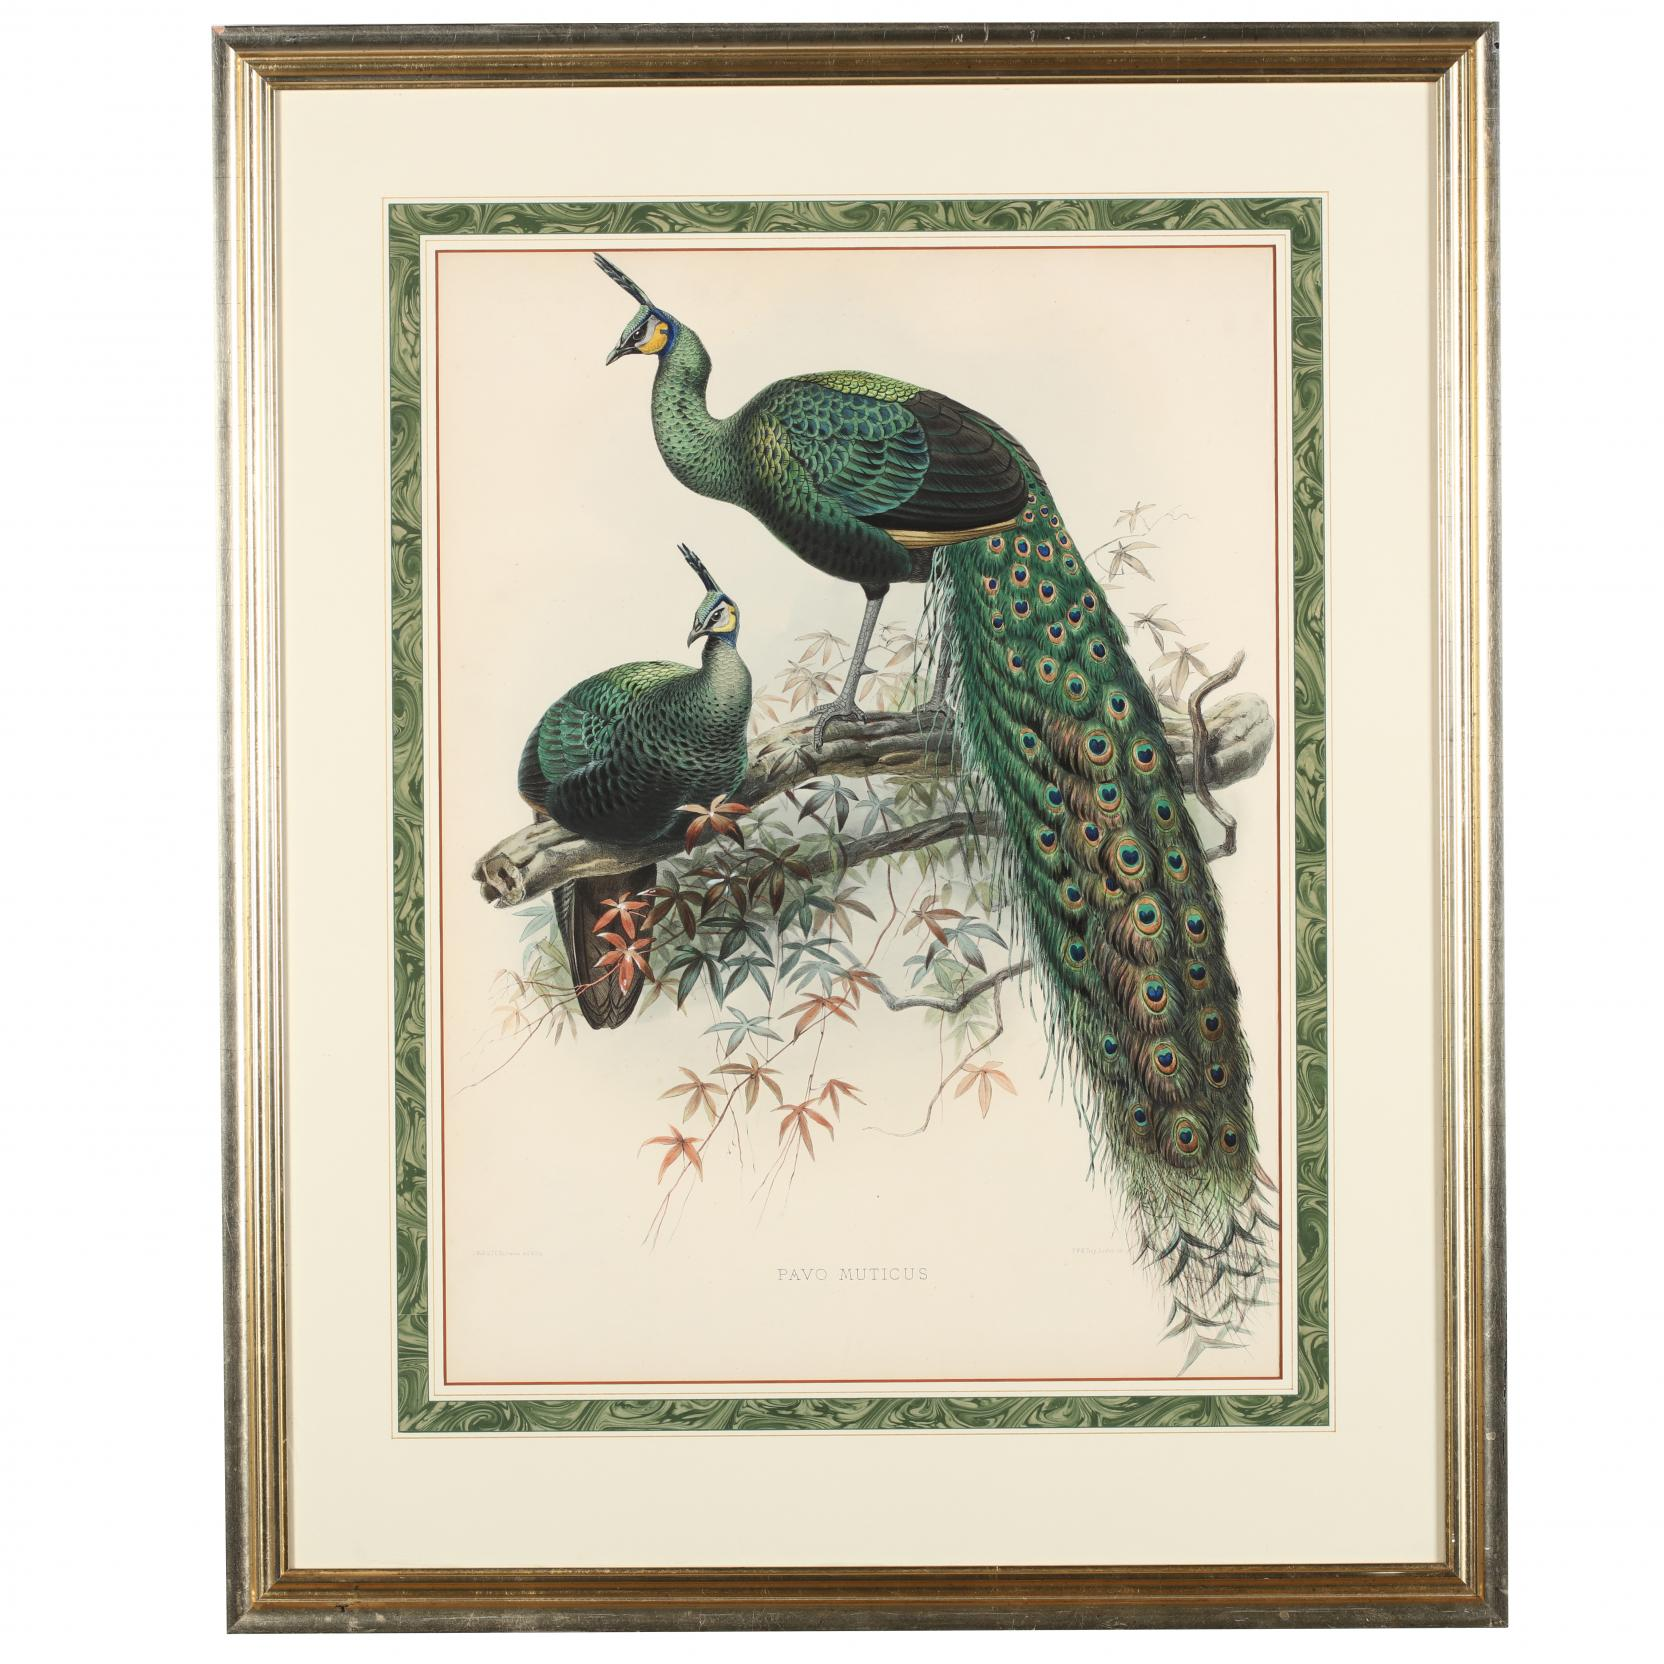 after-joseph-wolf-by-j-g-keulemans-19th-century-pavo-muticus-pea-fowl